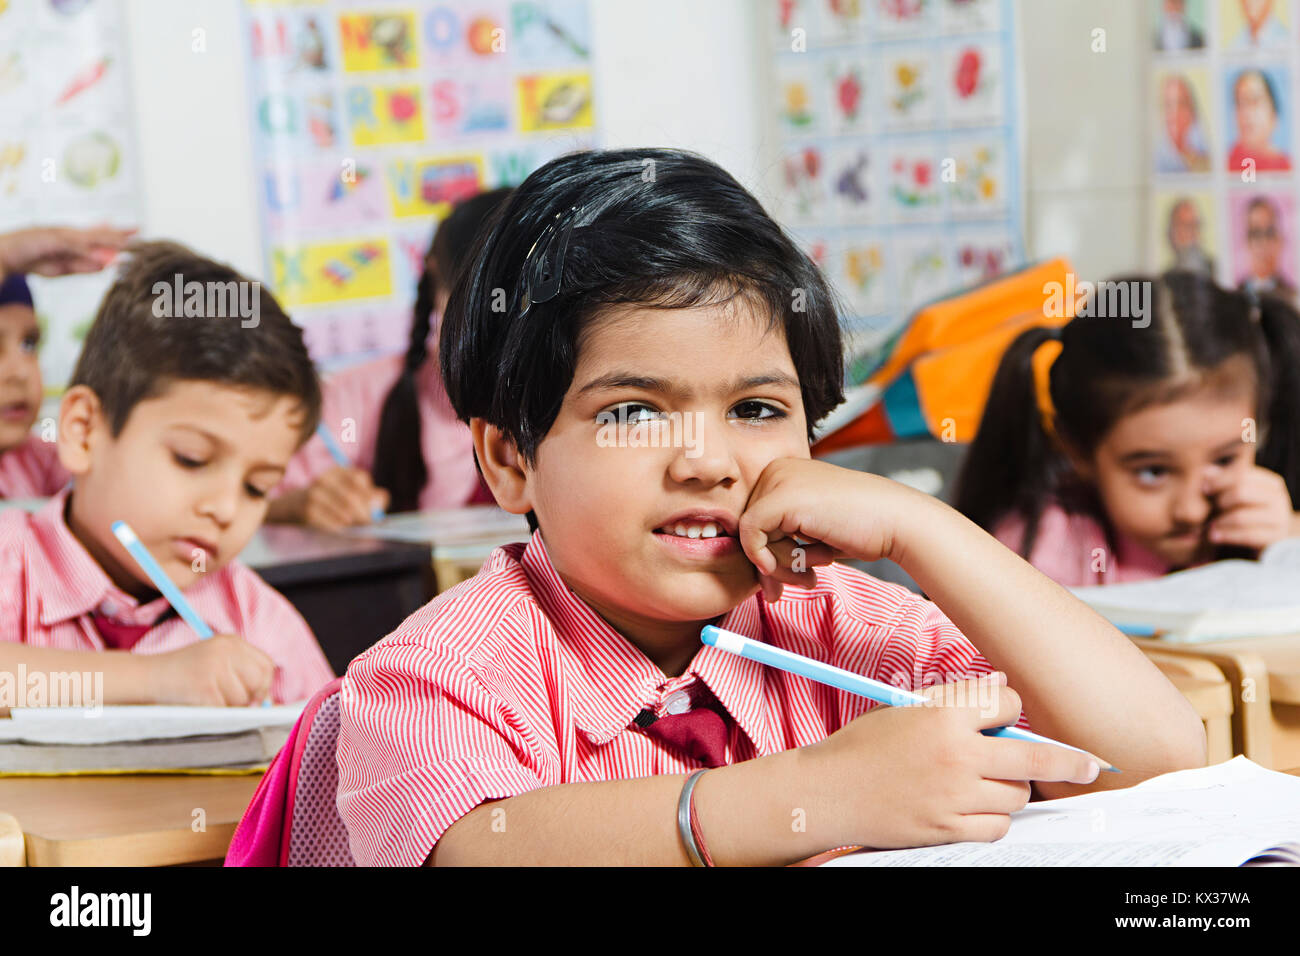 Indian Childrens Hands Stock Photos & Indian Childrens ...